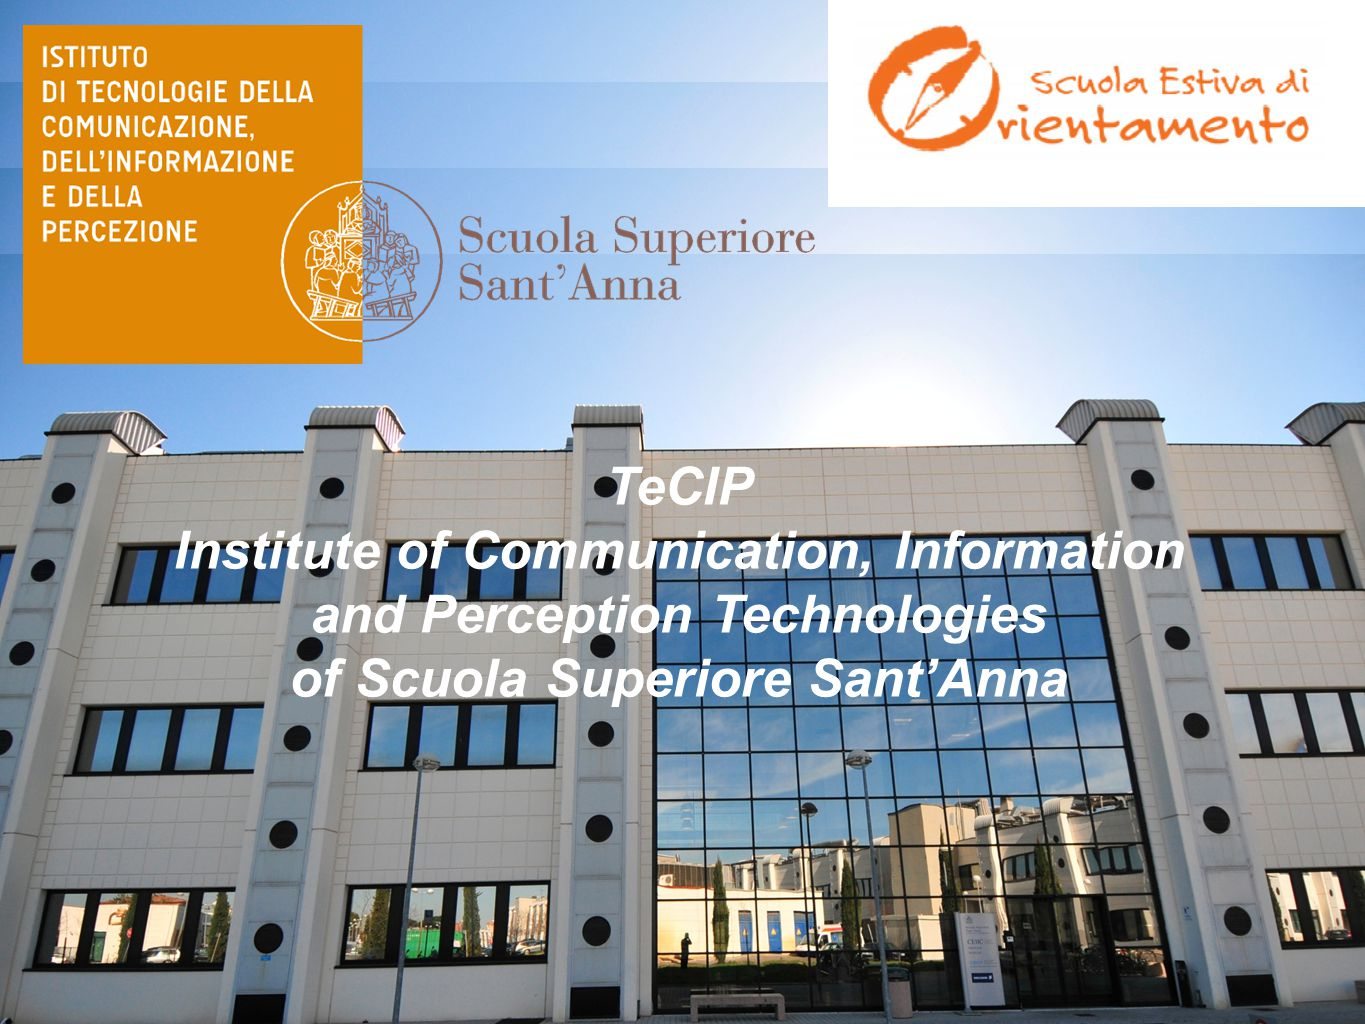 TeCIP Institute of Communication, Information and Perception Technologies of Scuola Superiore Sant'Anna